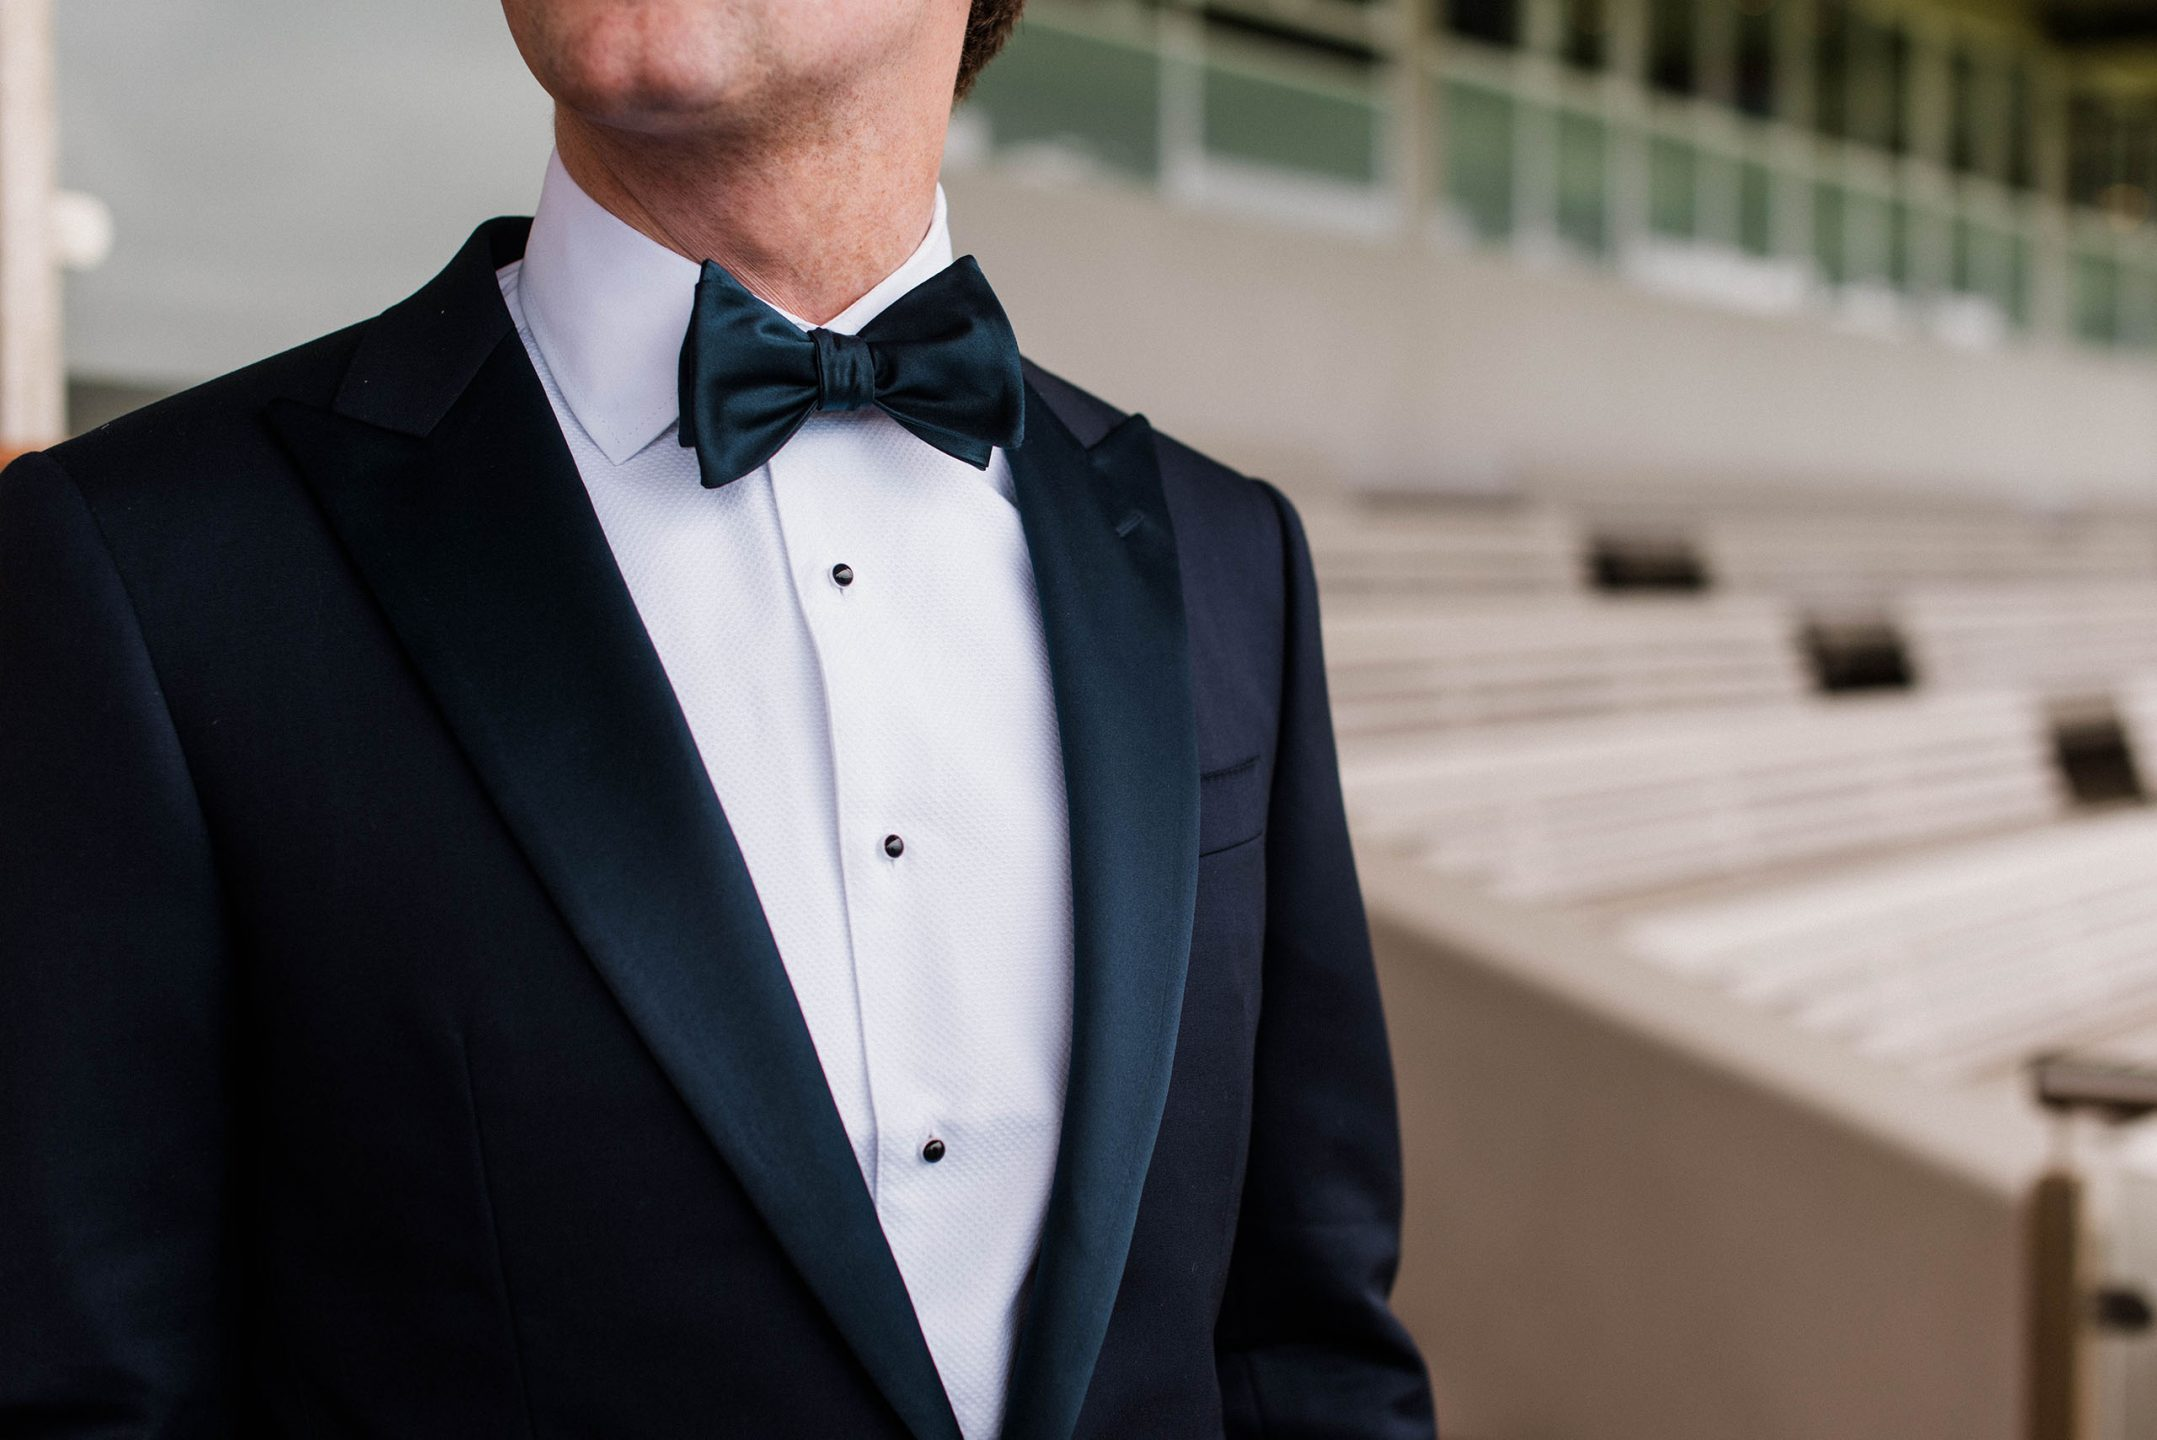 Man in Adelaide wearing made-to-measure suit with bow-tie